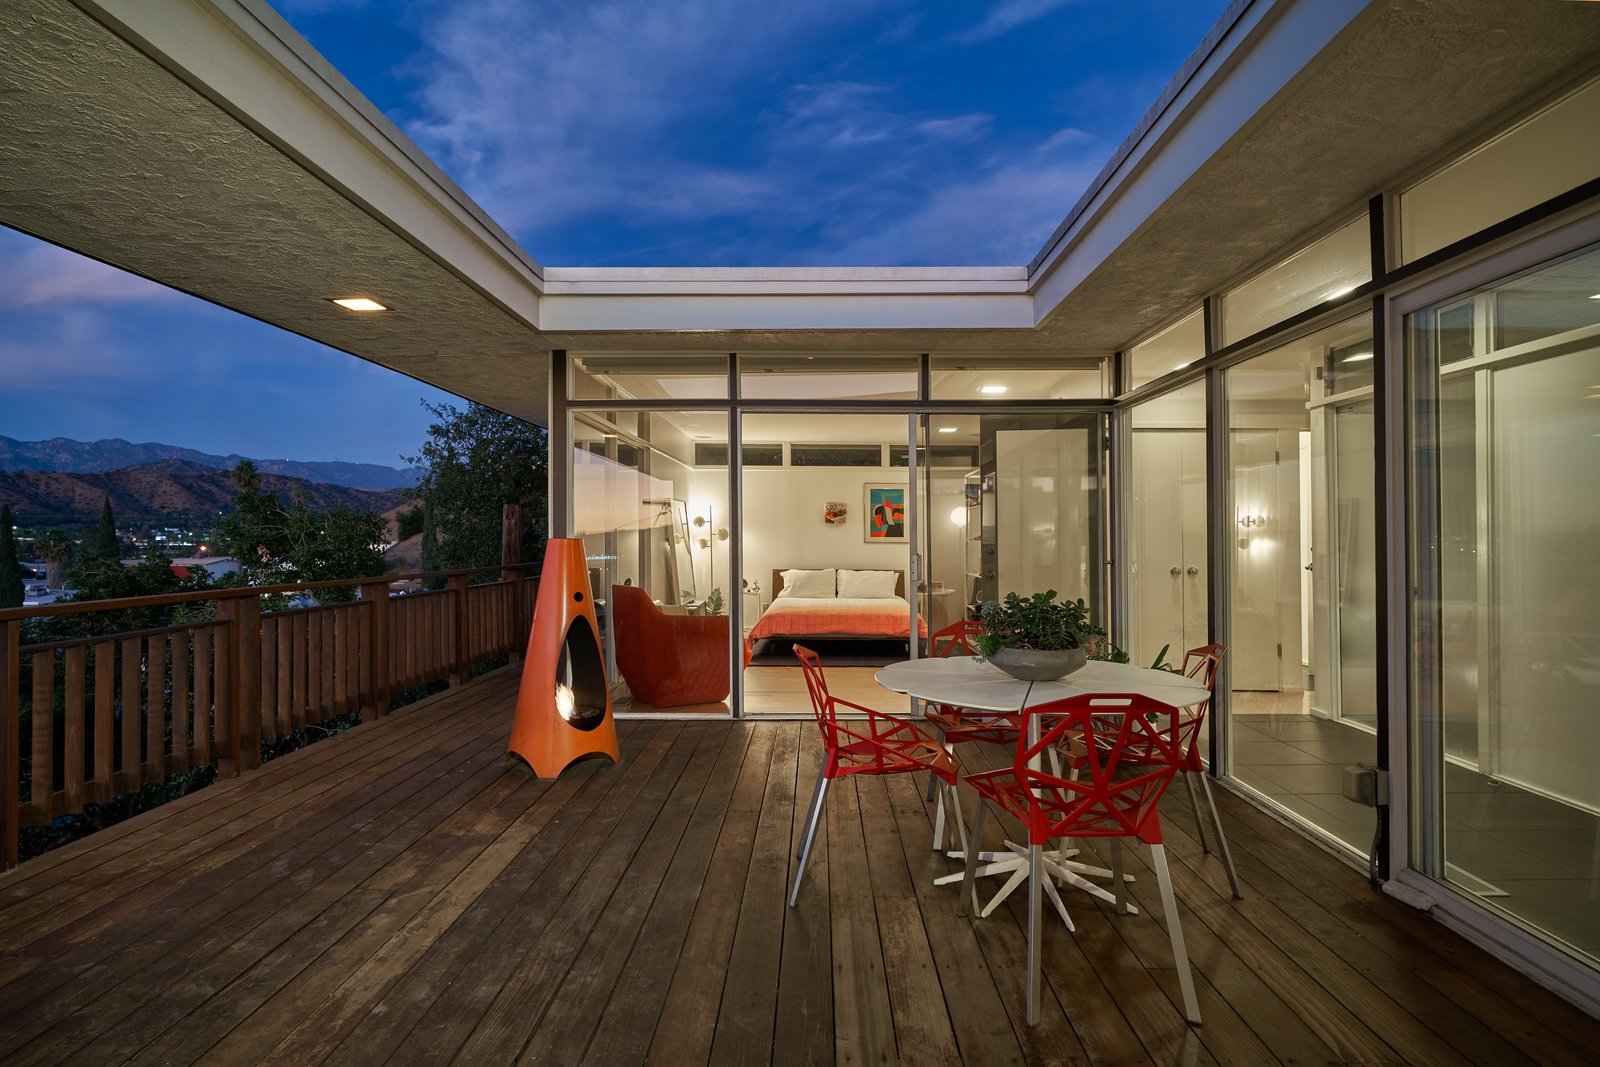 The bedrooms are located on one wing of the H-shaped house, with the kitchen/dining/living area on the other. Tagged: Outdoor and Wood Patio, Porch, Deck.  Photo 4 of 14 in A Midcentury-Modern Home in L.A. Designed by Richard Banta Is For Sale For $899K